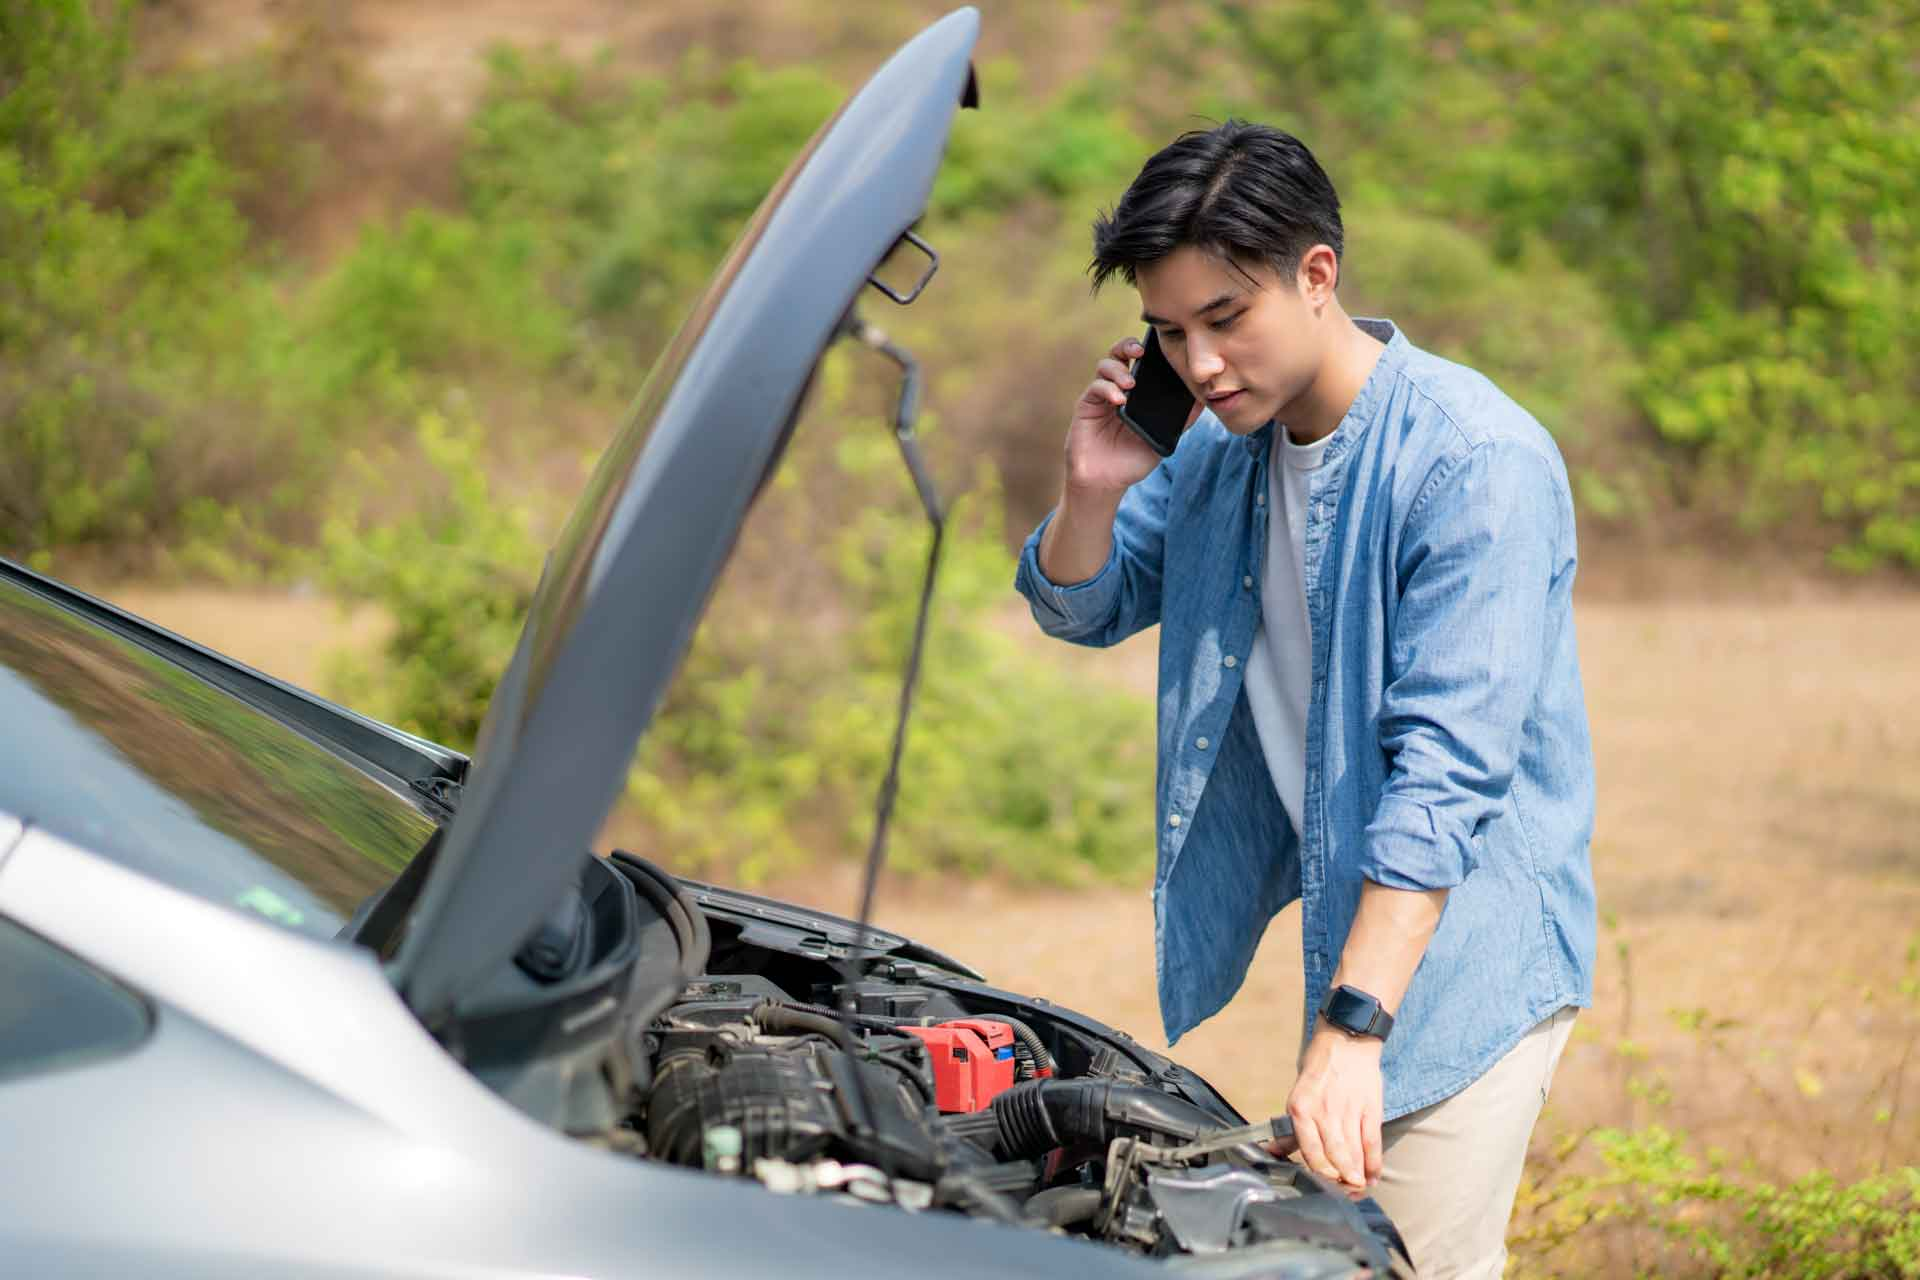 Contact Gulfport Towing Pros for 24-hour Emergency auto towing service in Gulfport, MS at (228) 666-8281